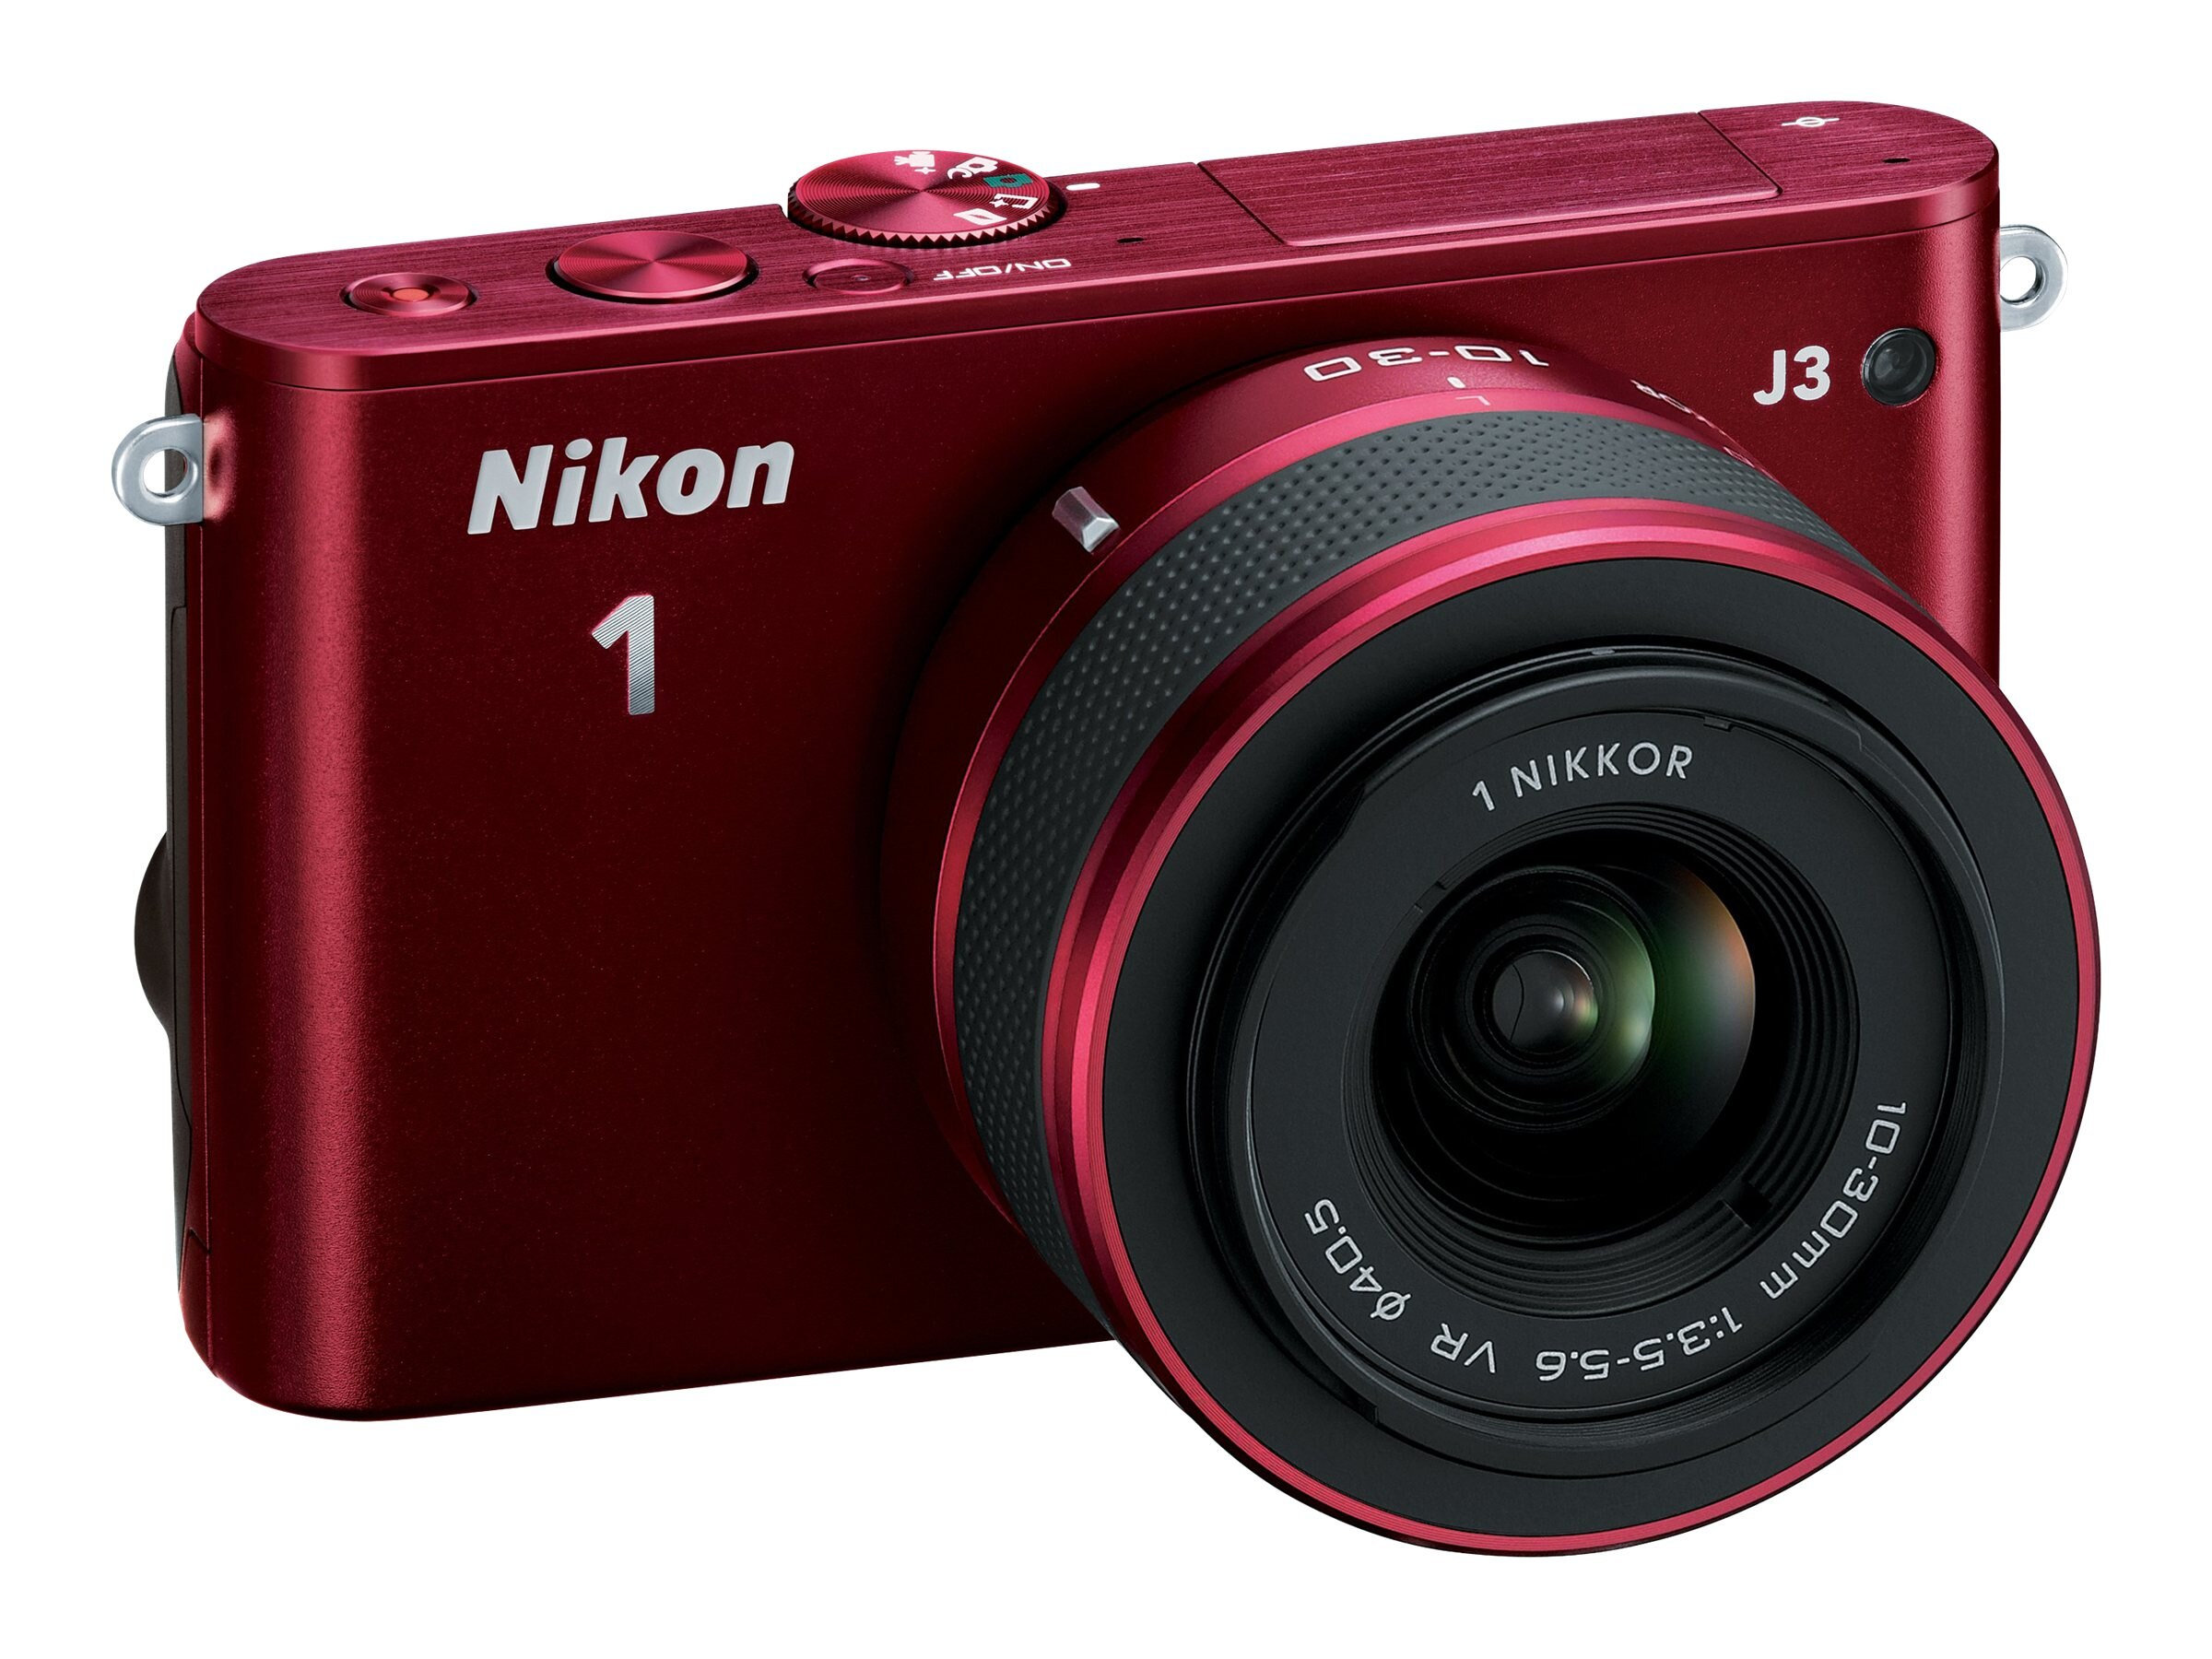 Nikon J3 Interchangable Lens Digital Camera, 14.2MP, Red with 10-30mm Lens